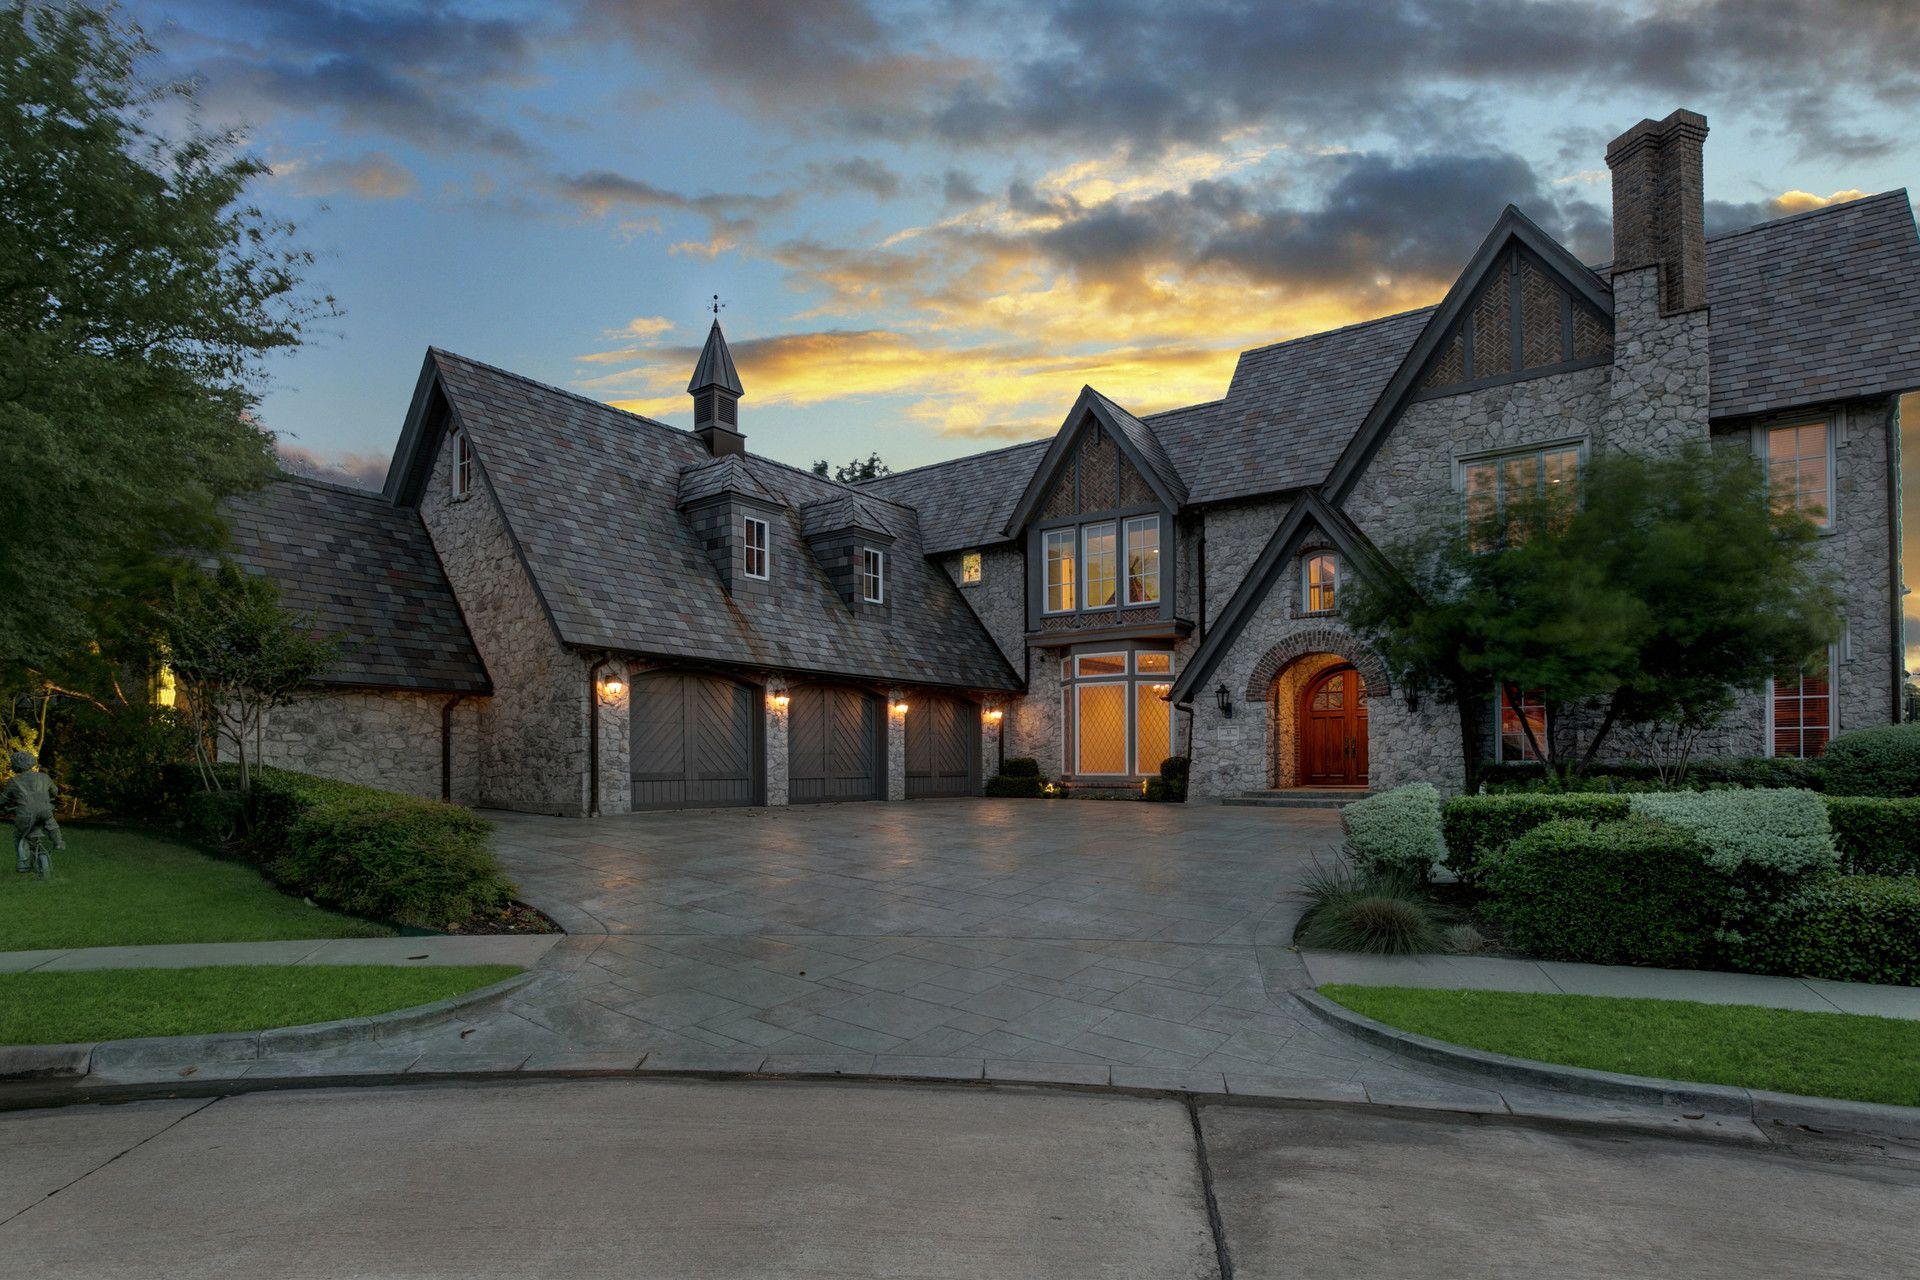 Pin On Homes For Sale In Stonebriar Village Frisco Tx Homes For Sale In Frisco Texas